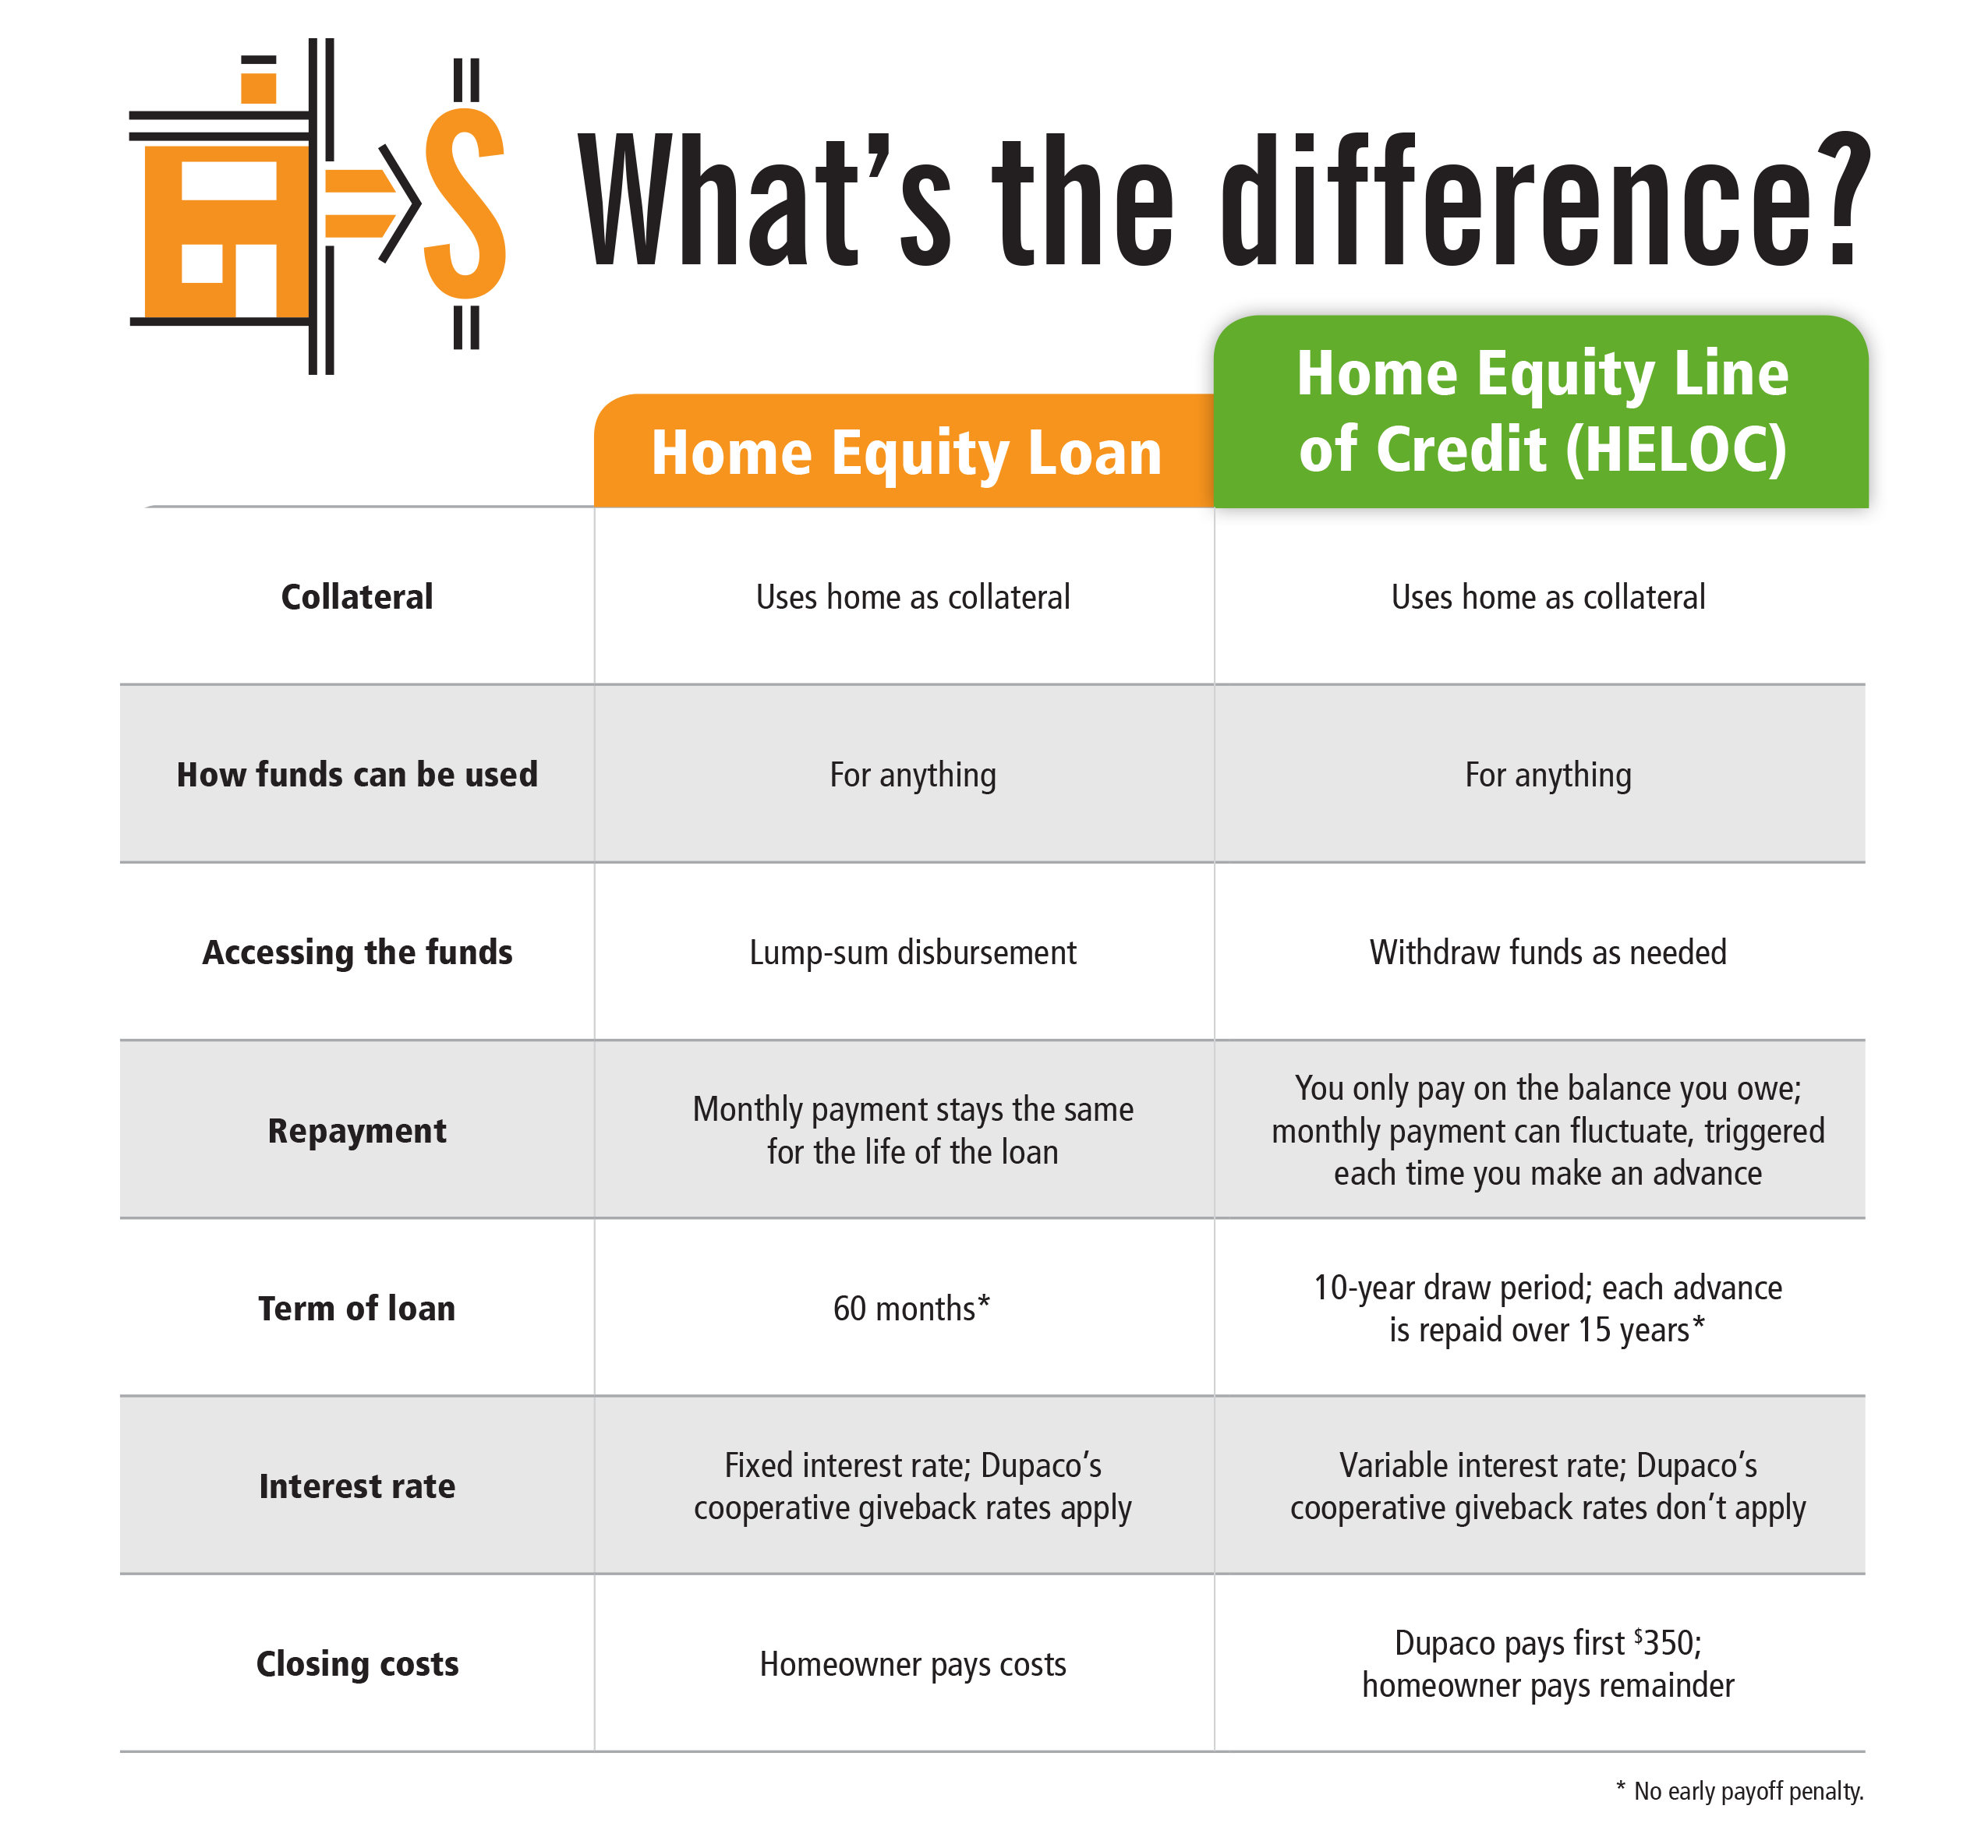 Dupaco's home equity loan vs. home equity line of credit (HELOC)